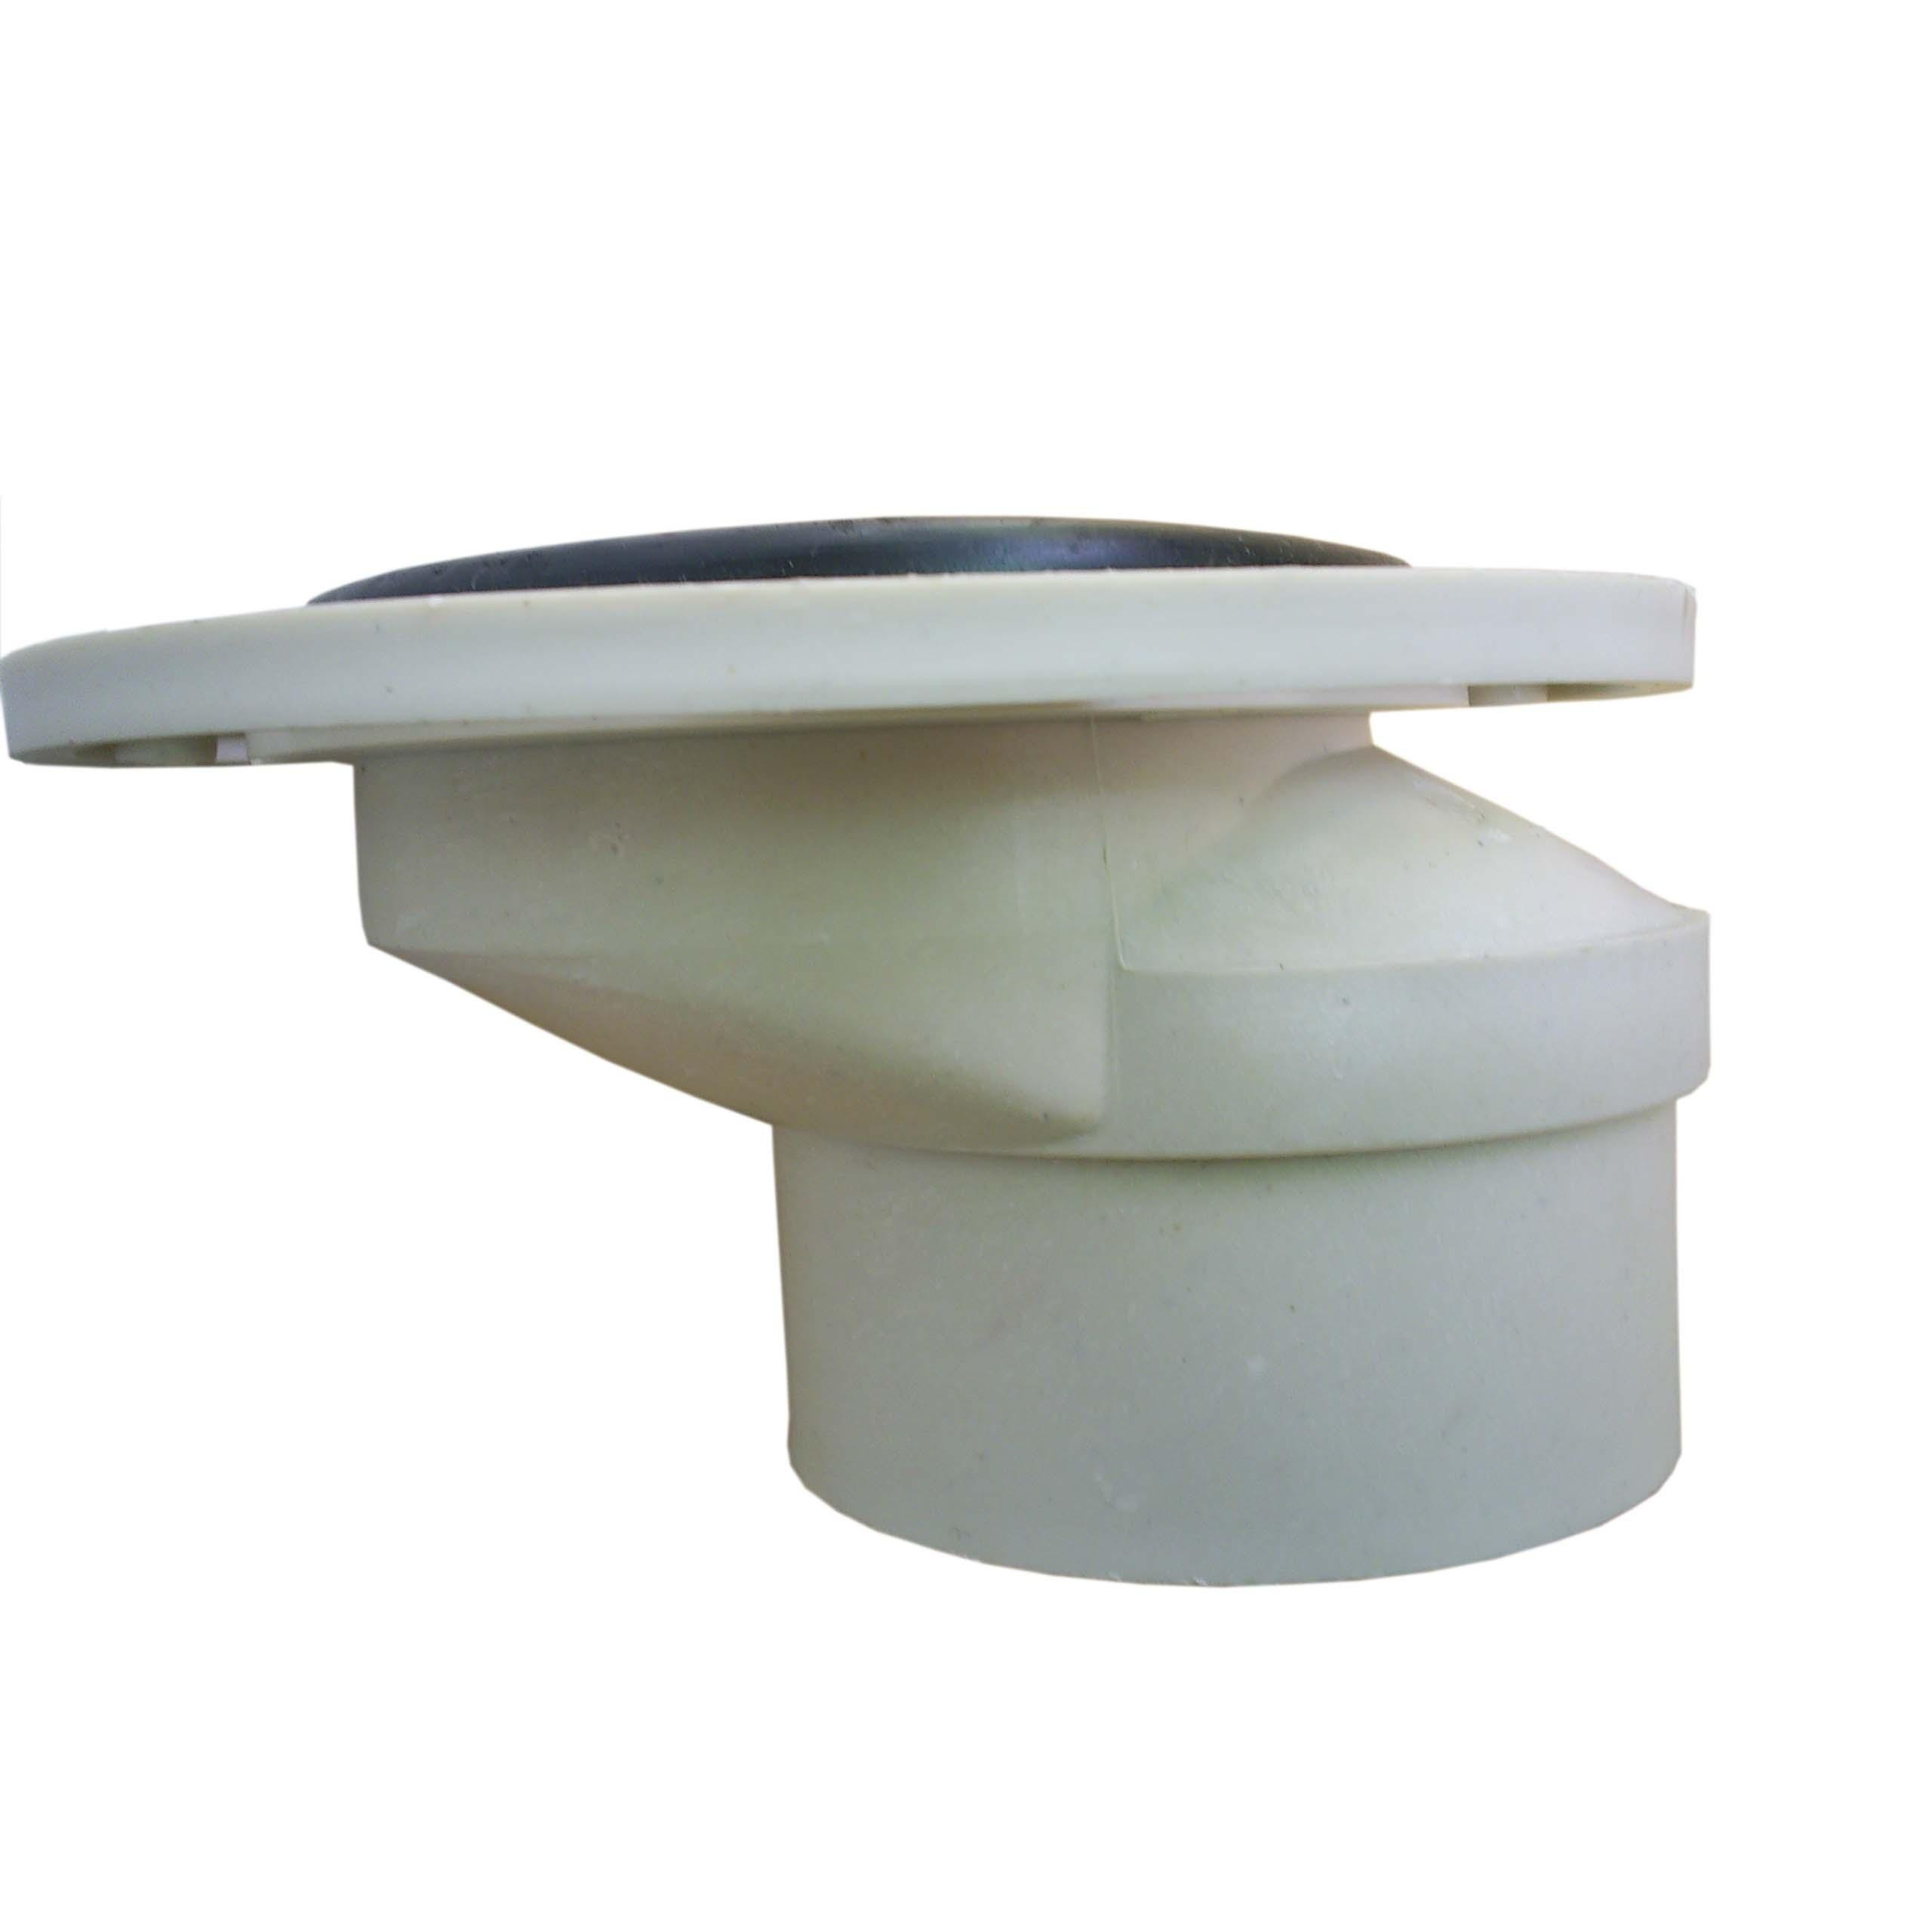 Offset Toilet Flange Manufacturer, Supplier & Exporter